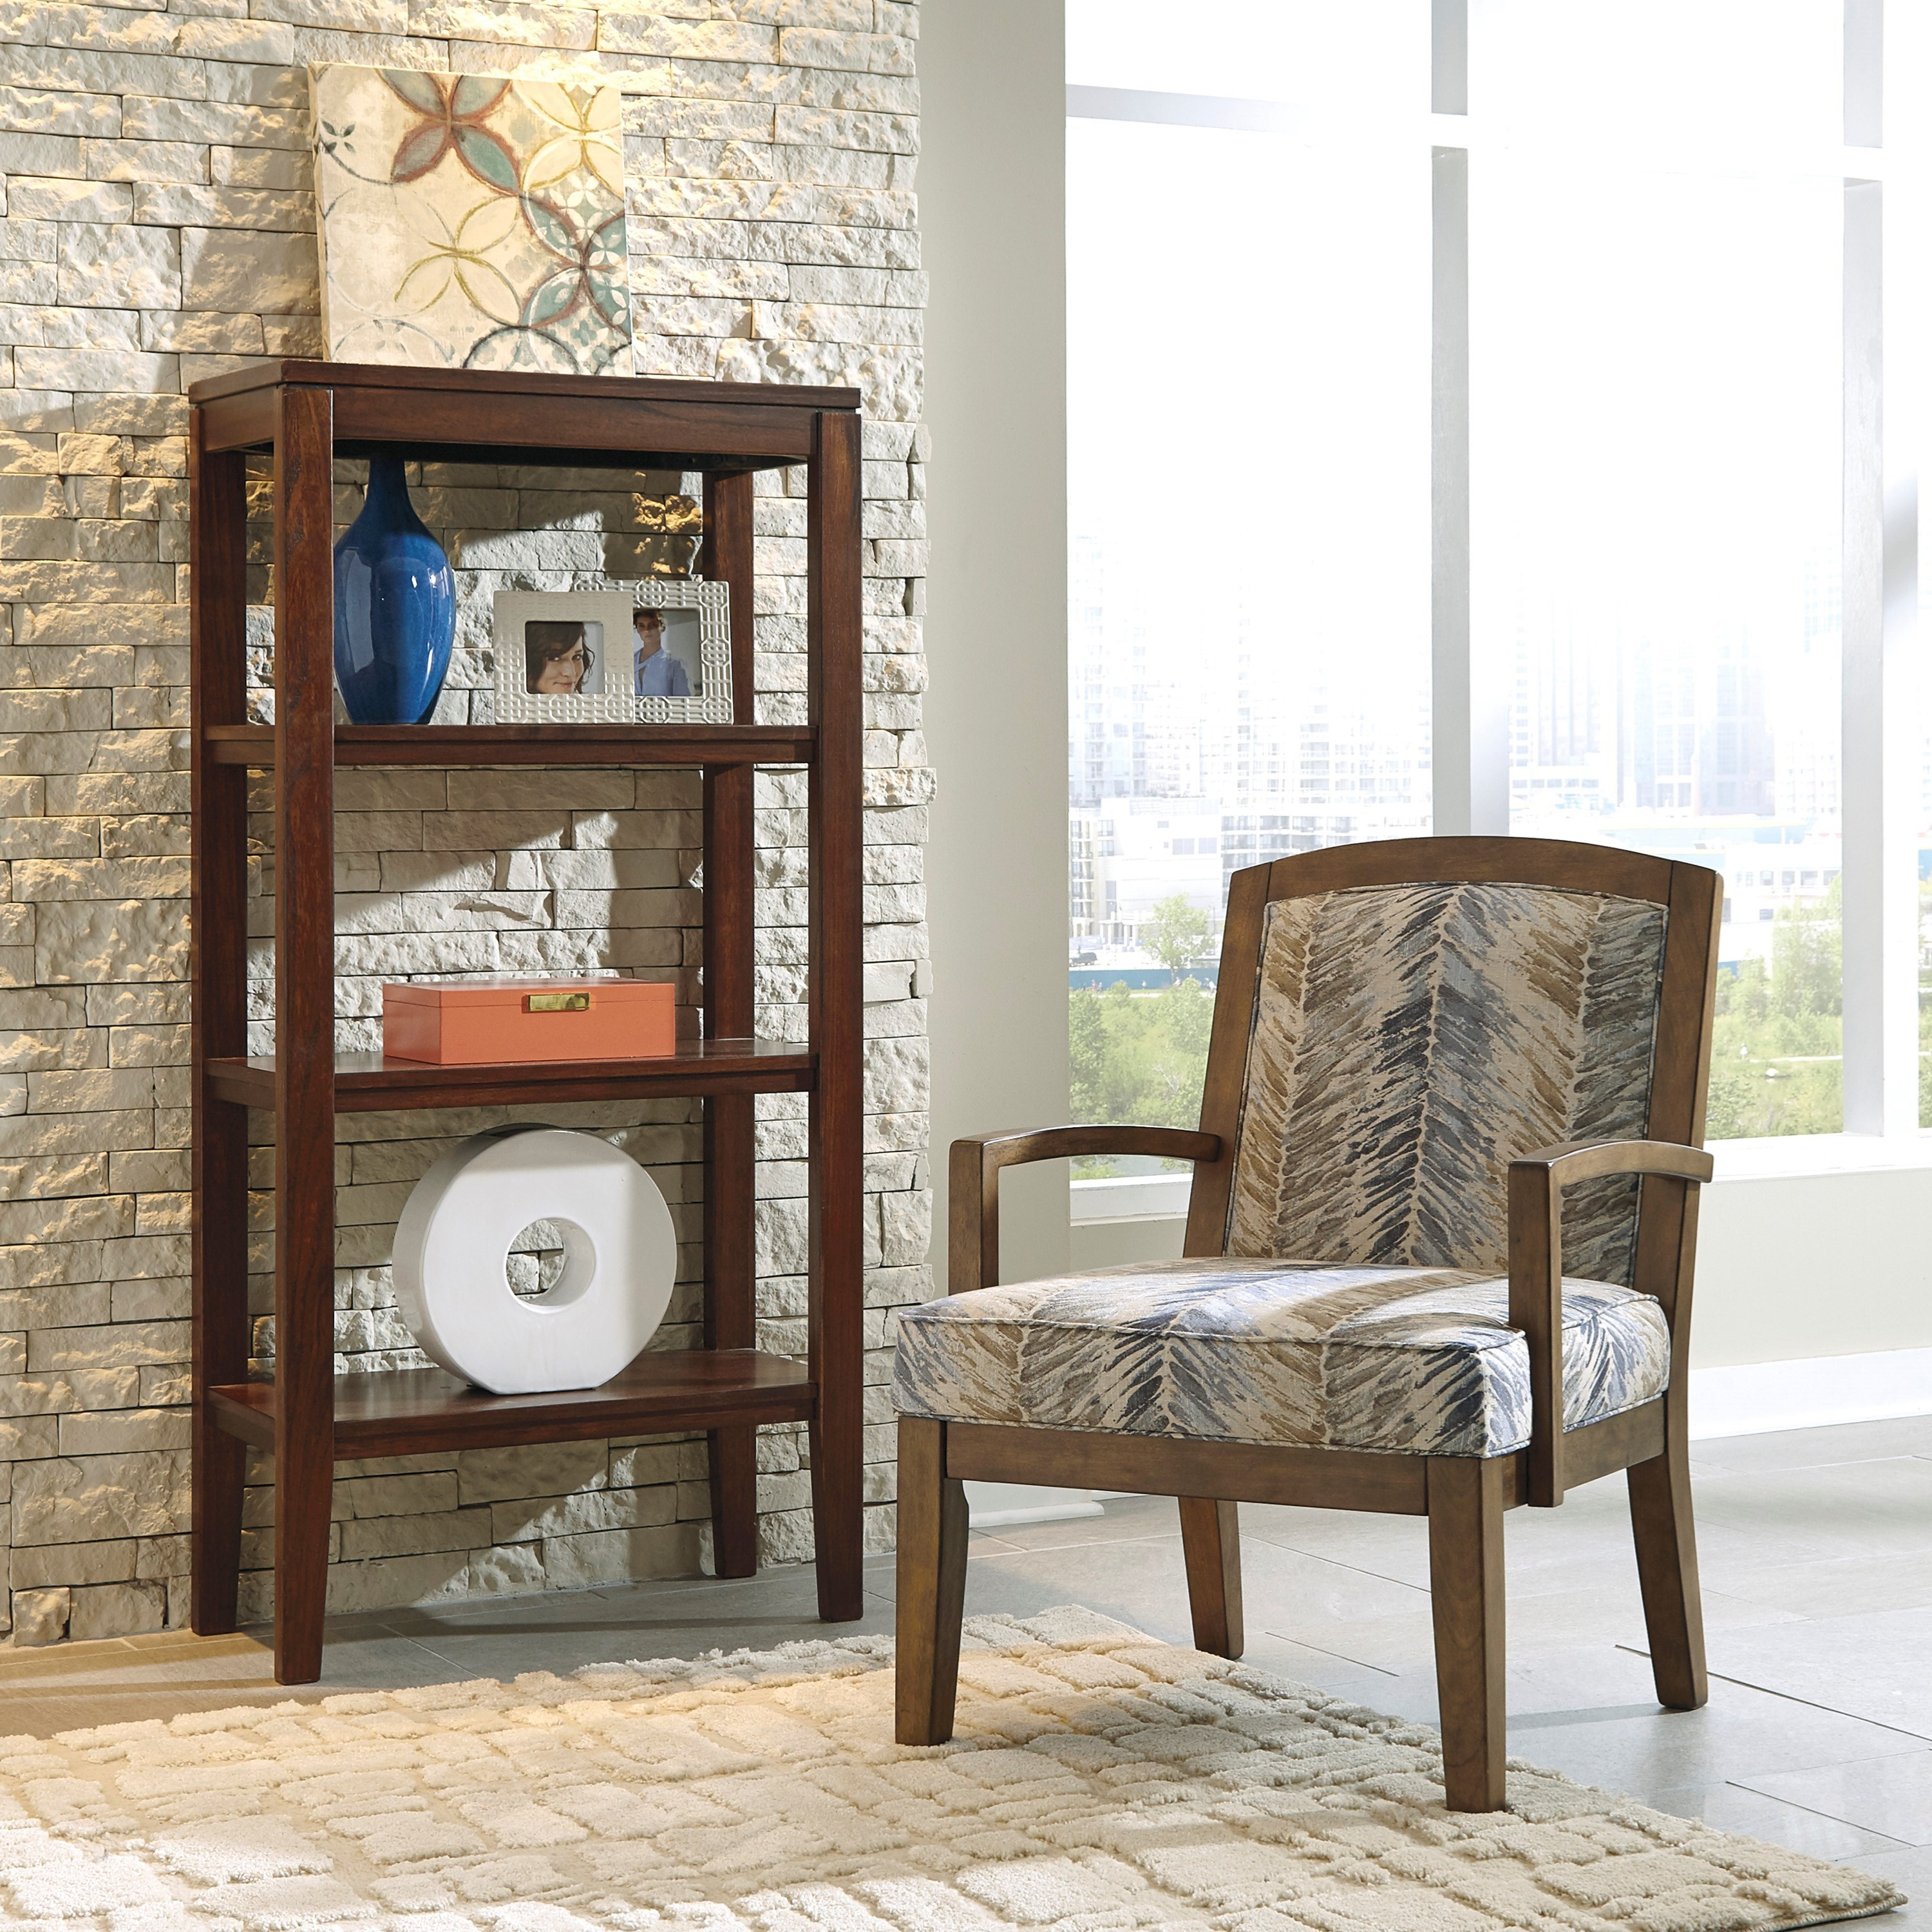 Exposed Wood Furniture ~ Benchcraft hillsway contemporary wood frame accent